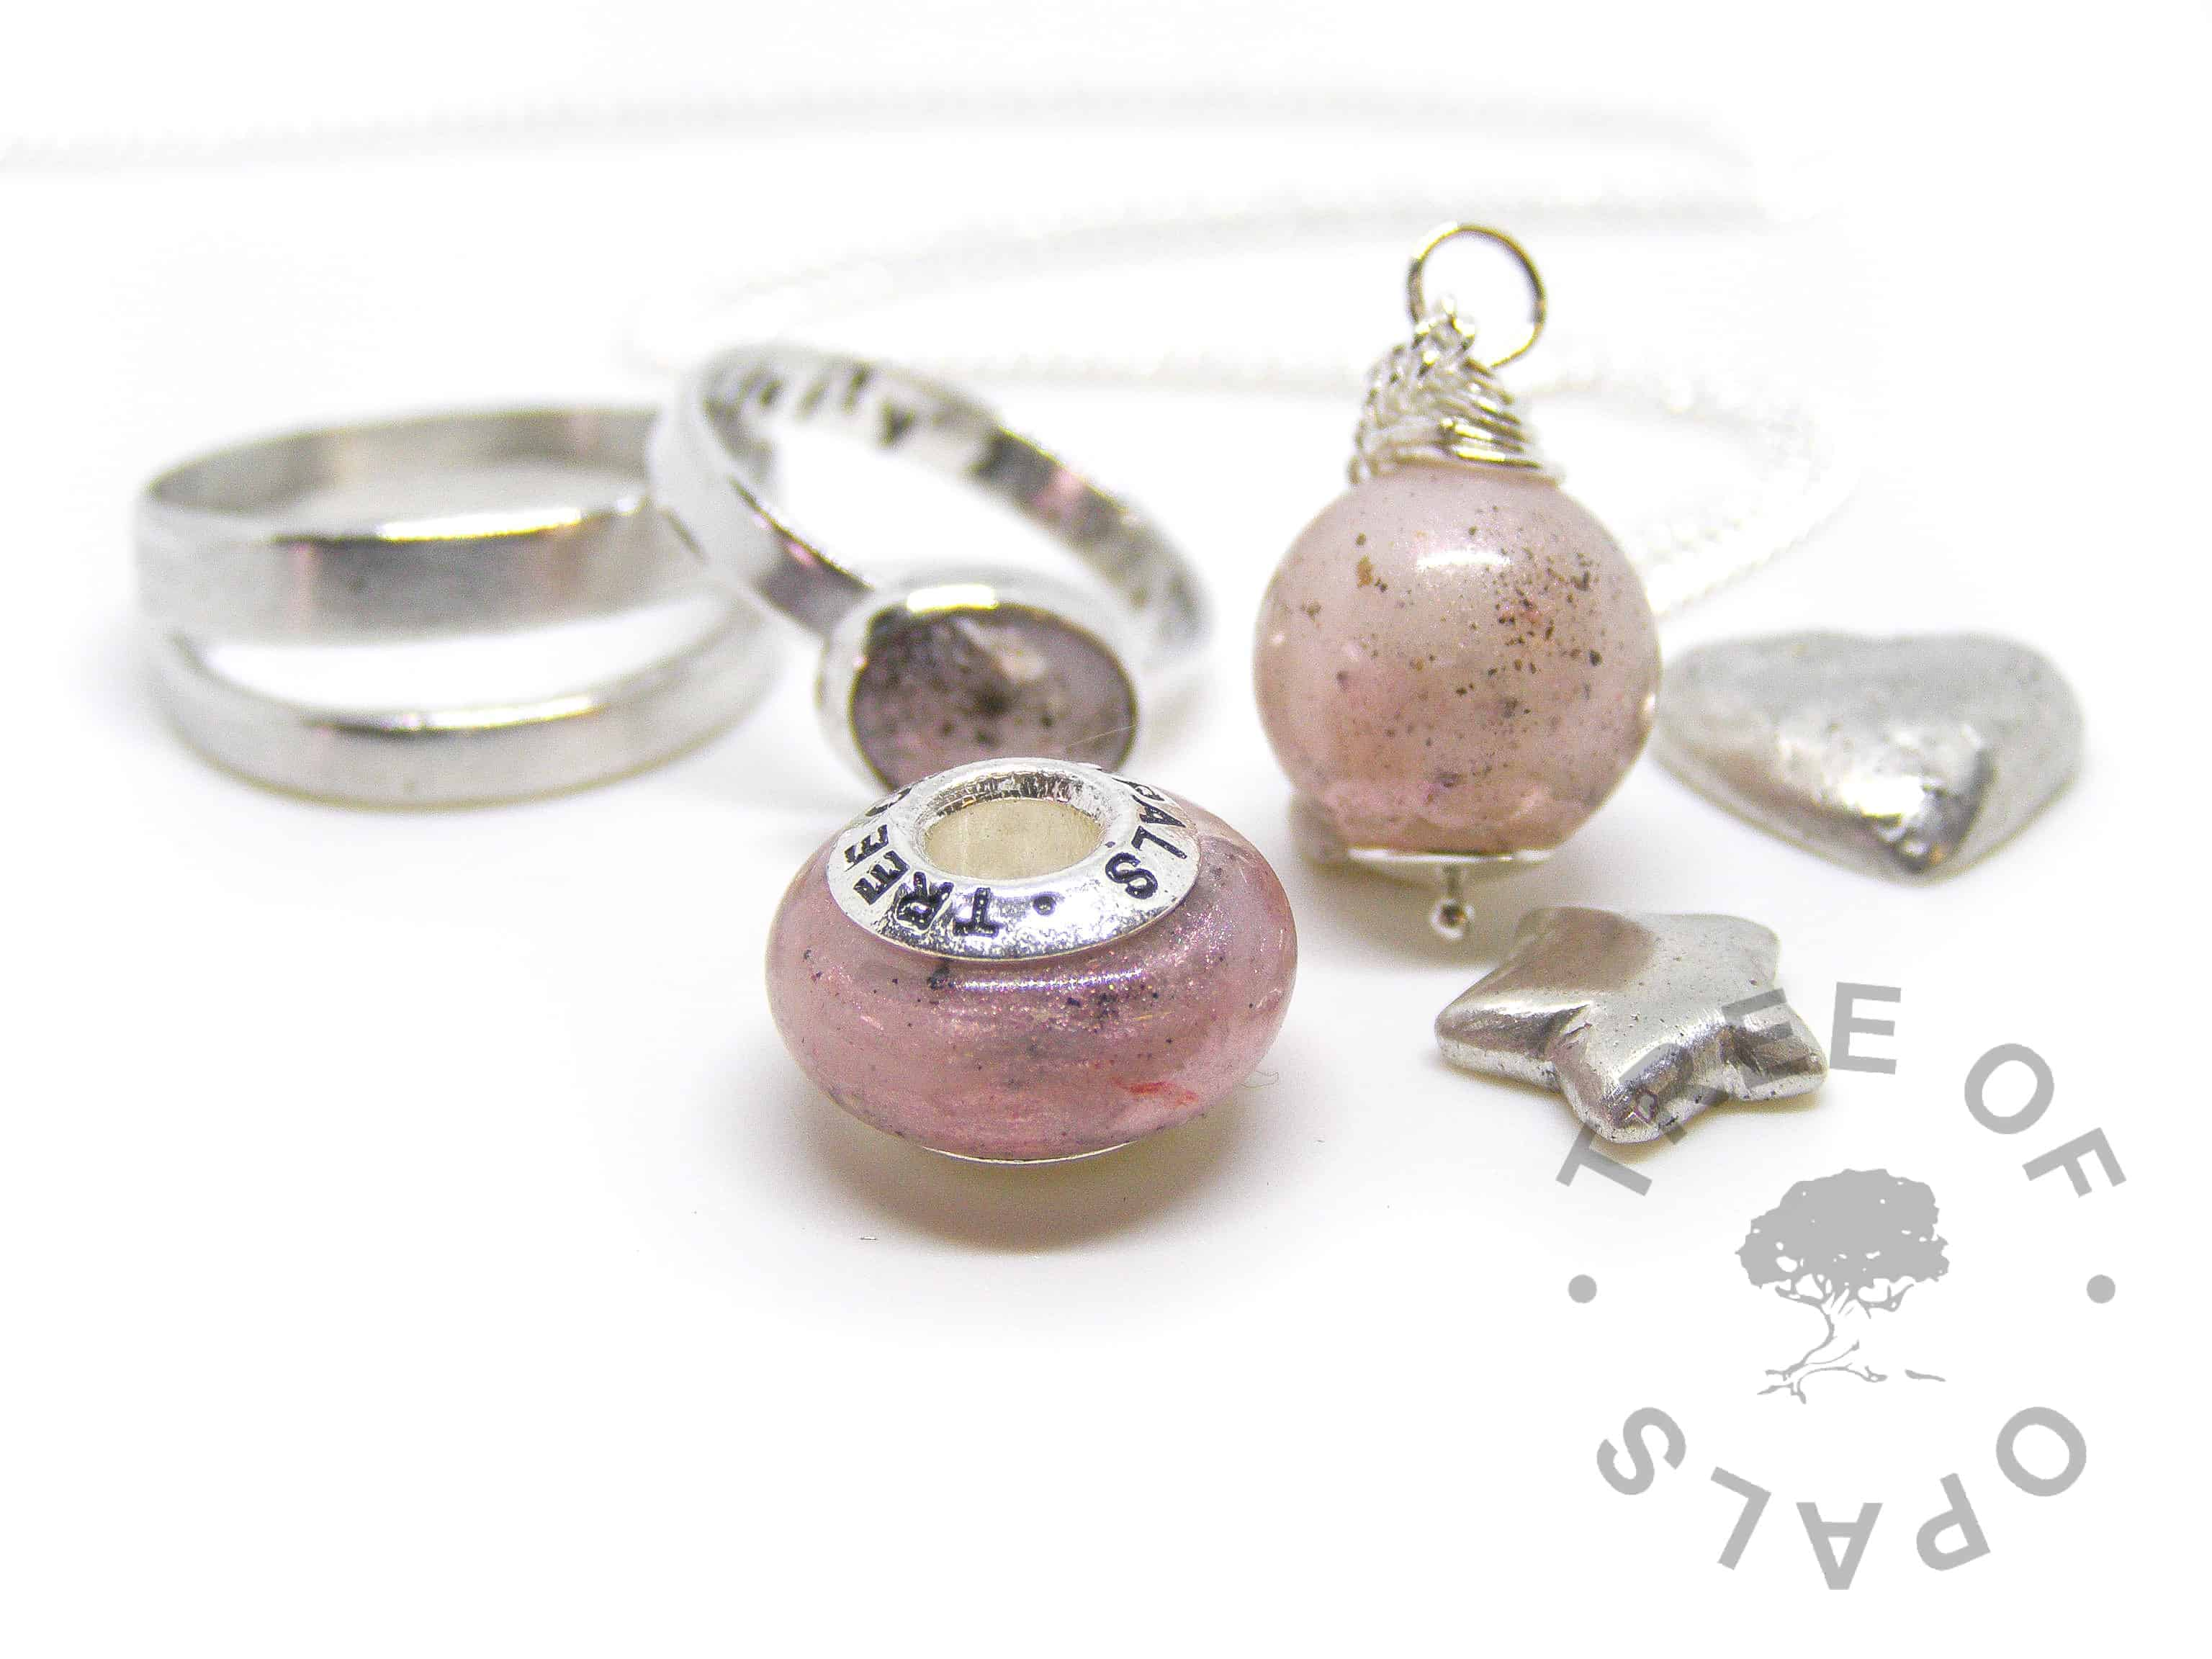 pro bono baby loss family order pinks. Cremation ash and breastmilk pearl, charm and ring with lemonade pink shimmer, and silver clay cremation ash pieces, memorial charm handmade by Tree of Opals keepsakes 2018 family order